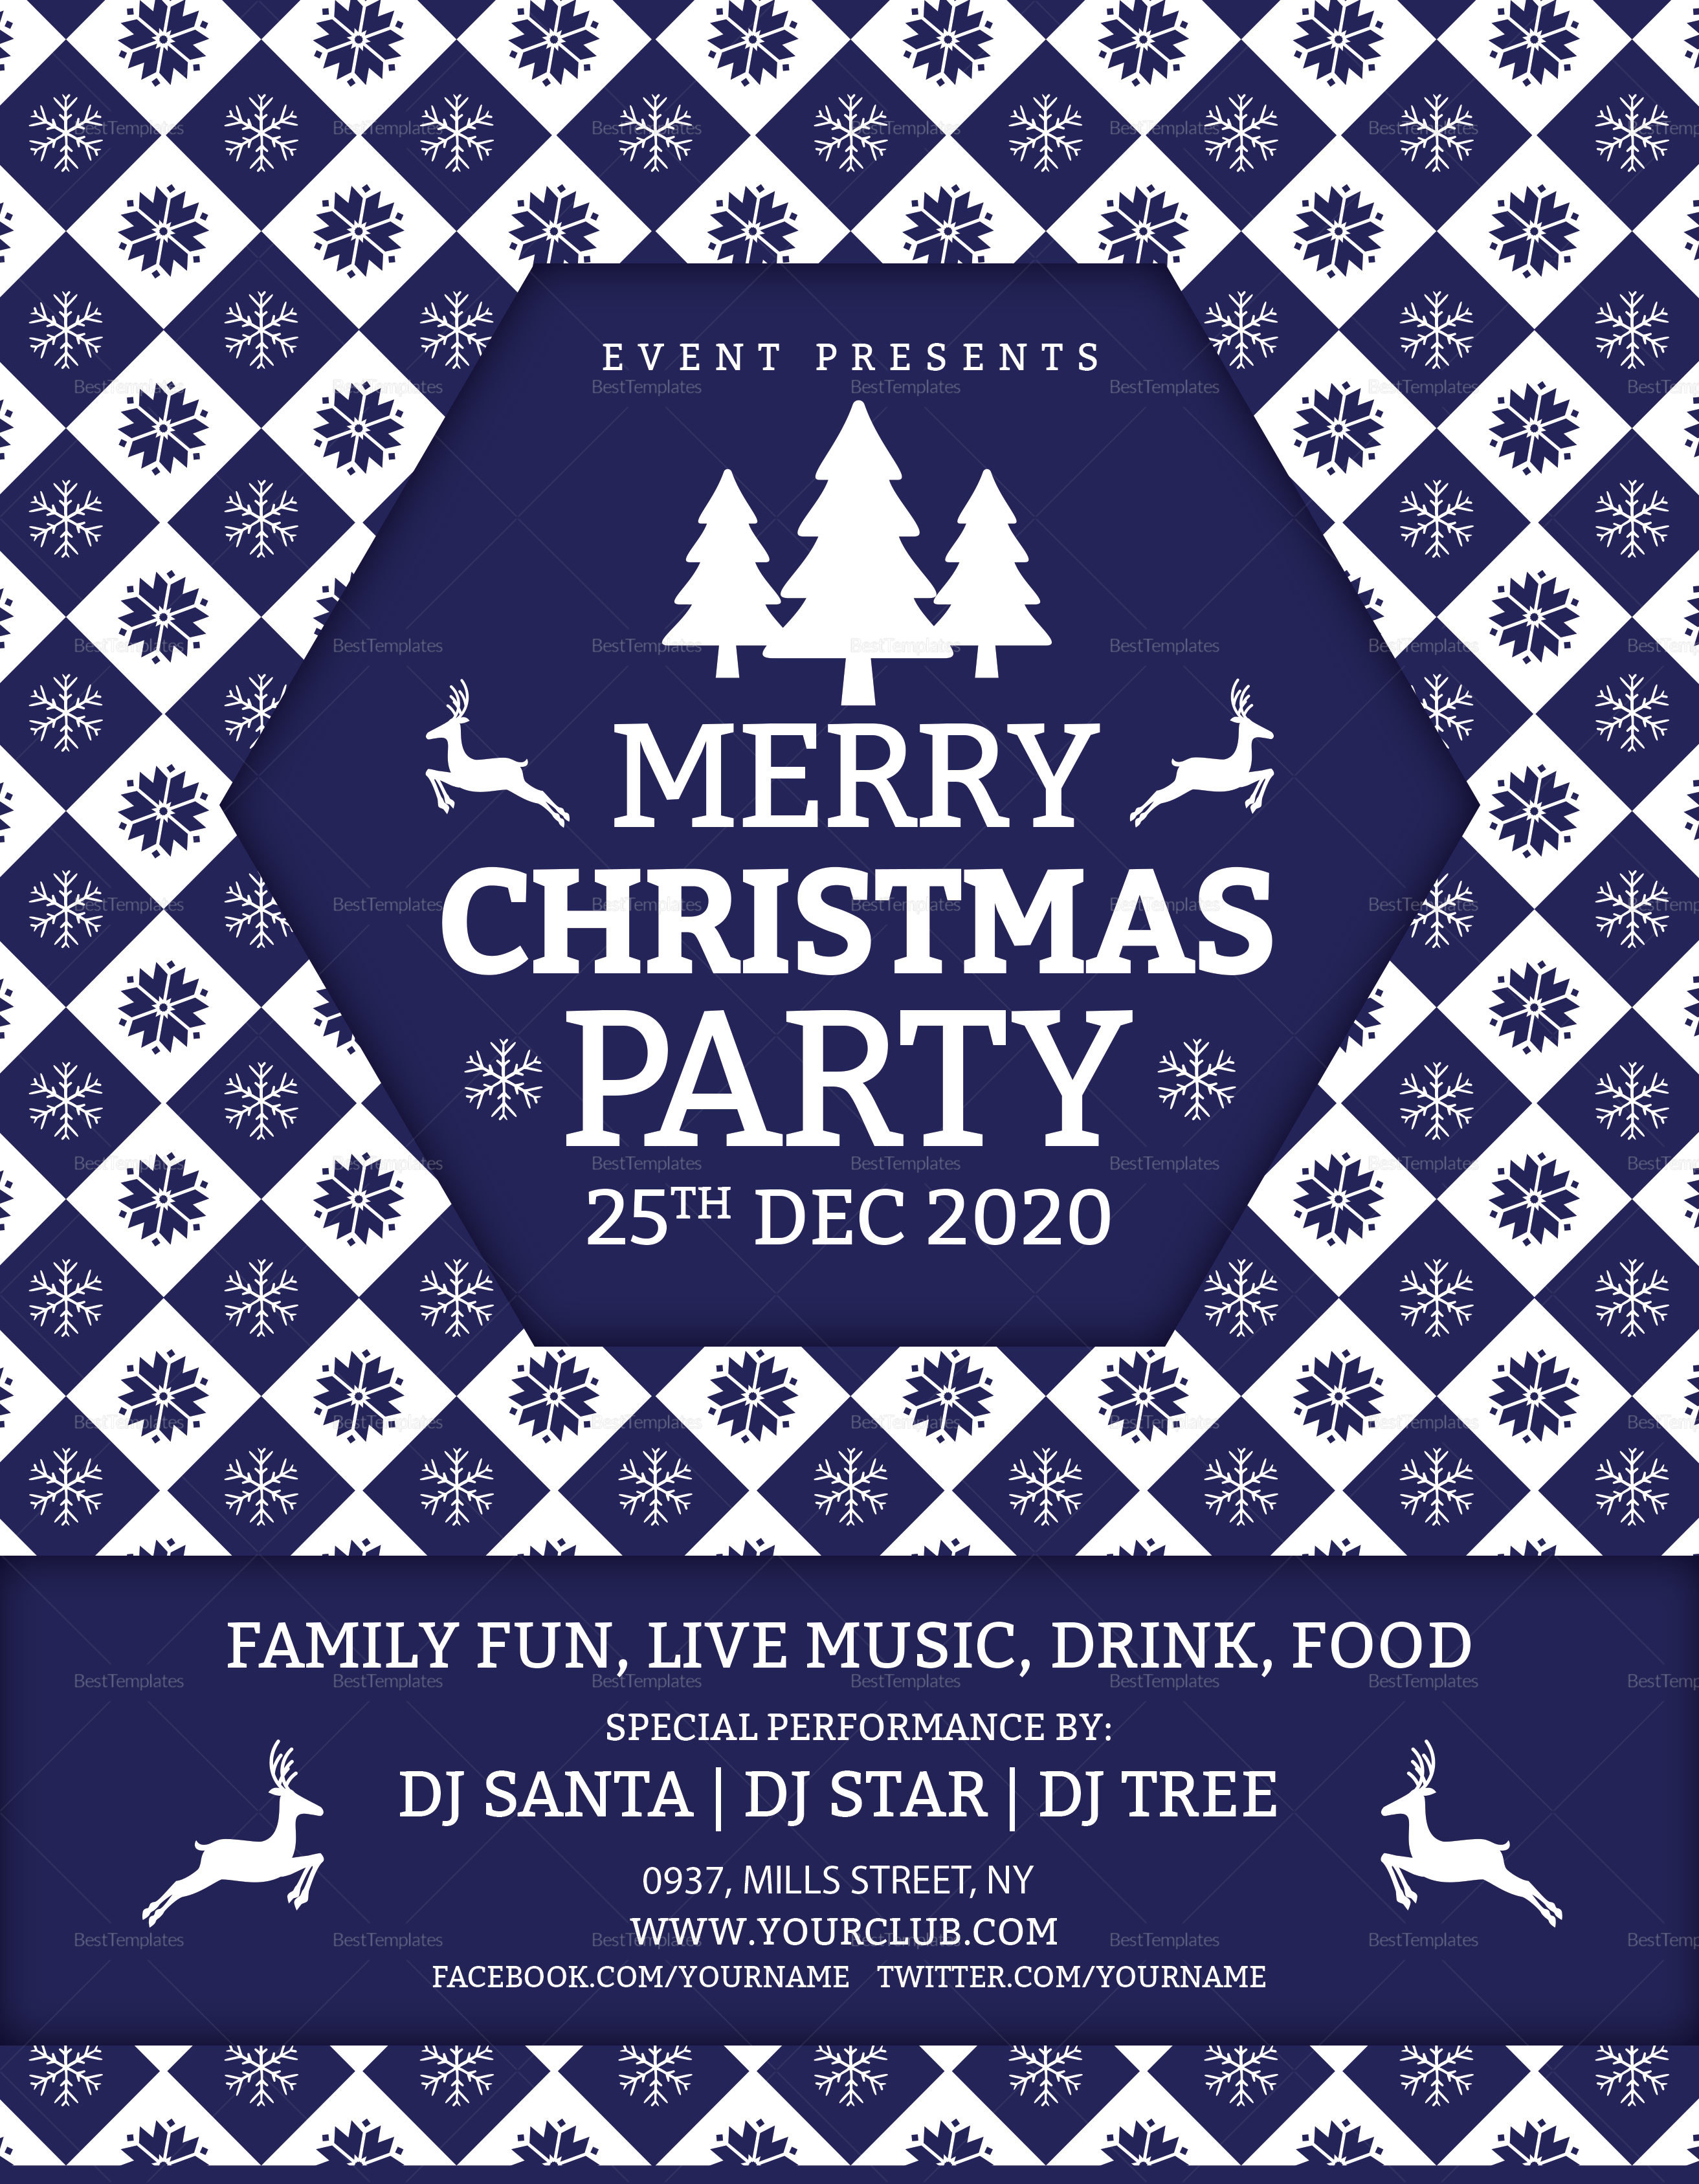 Merry Christmas DJ Party Flyer